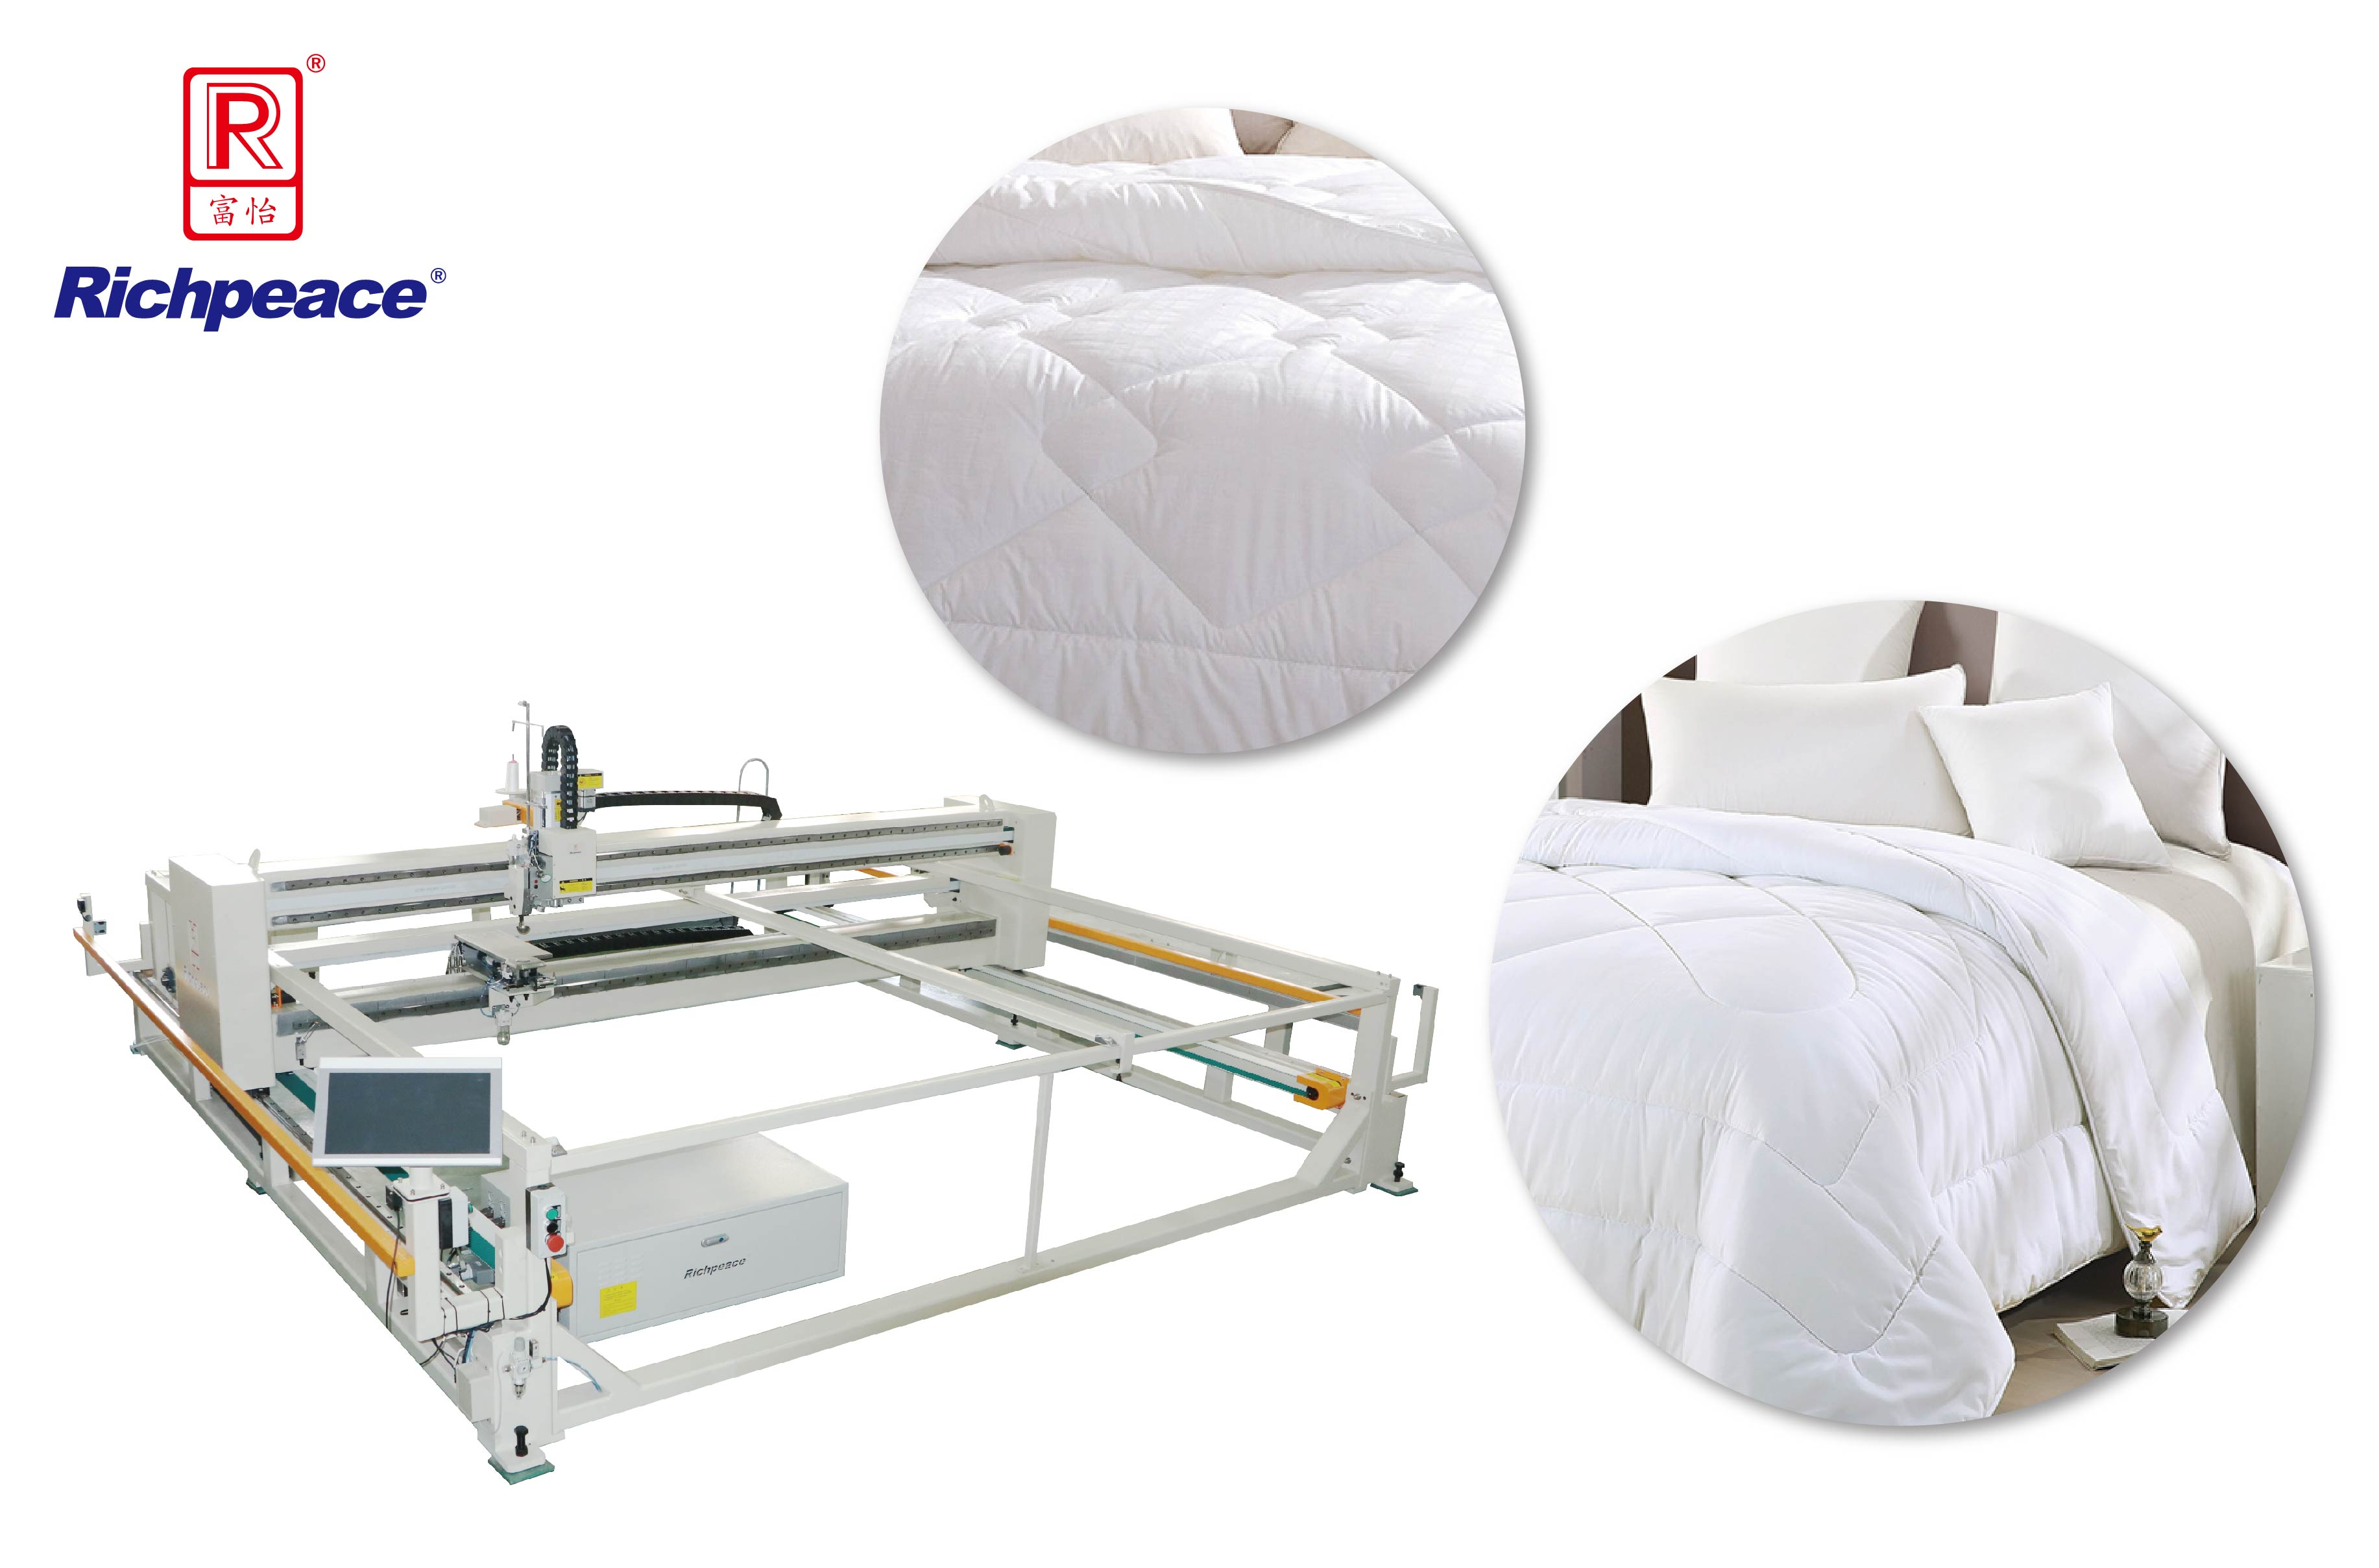 Richpeace Computerized Frame-Type Quilting Machine(Lifting Head)